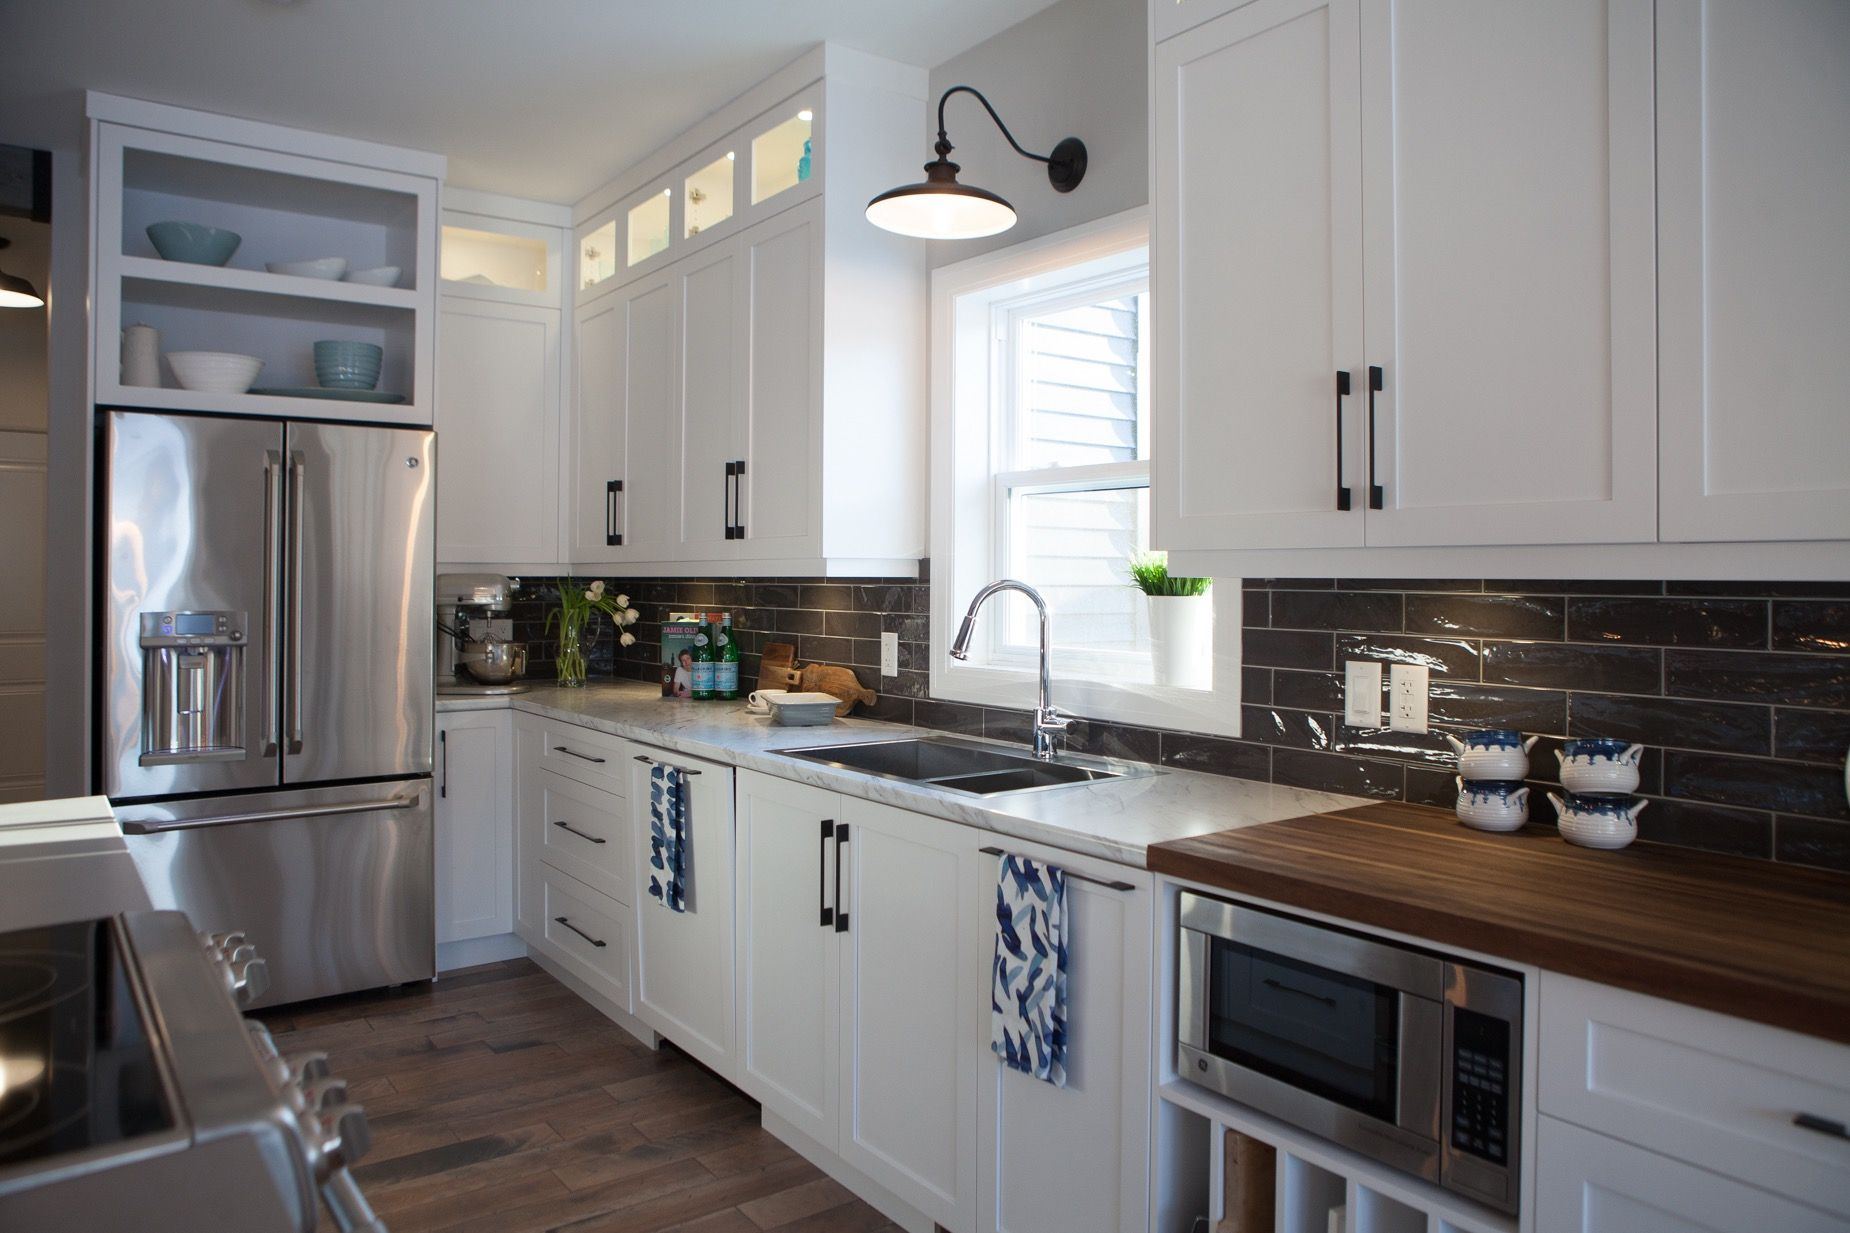 Classic White Kitchen With East Coast Feel This Custom Designed Kitchen Features White Cabinetry Bla Classic White Kitchen White Kitchen White Modern Kitchen